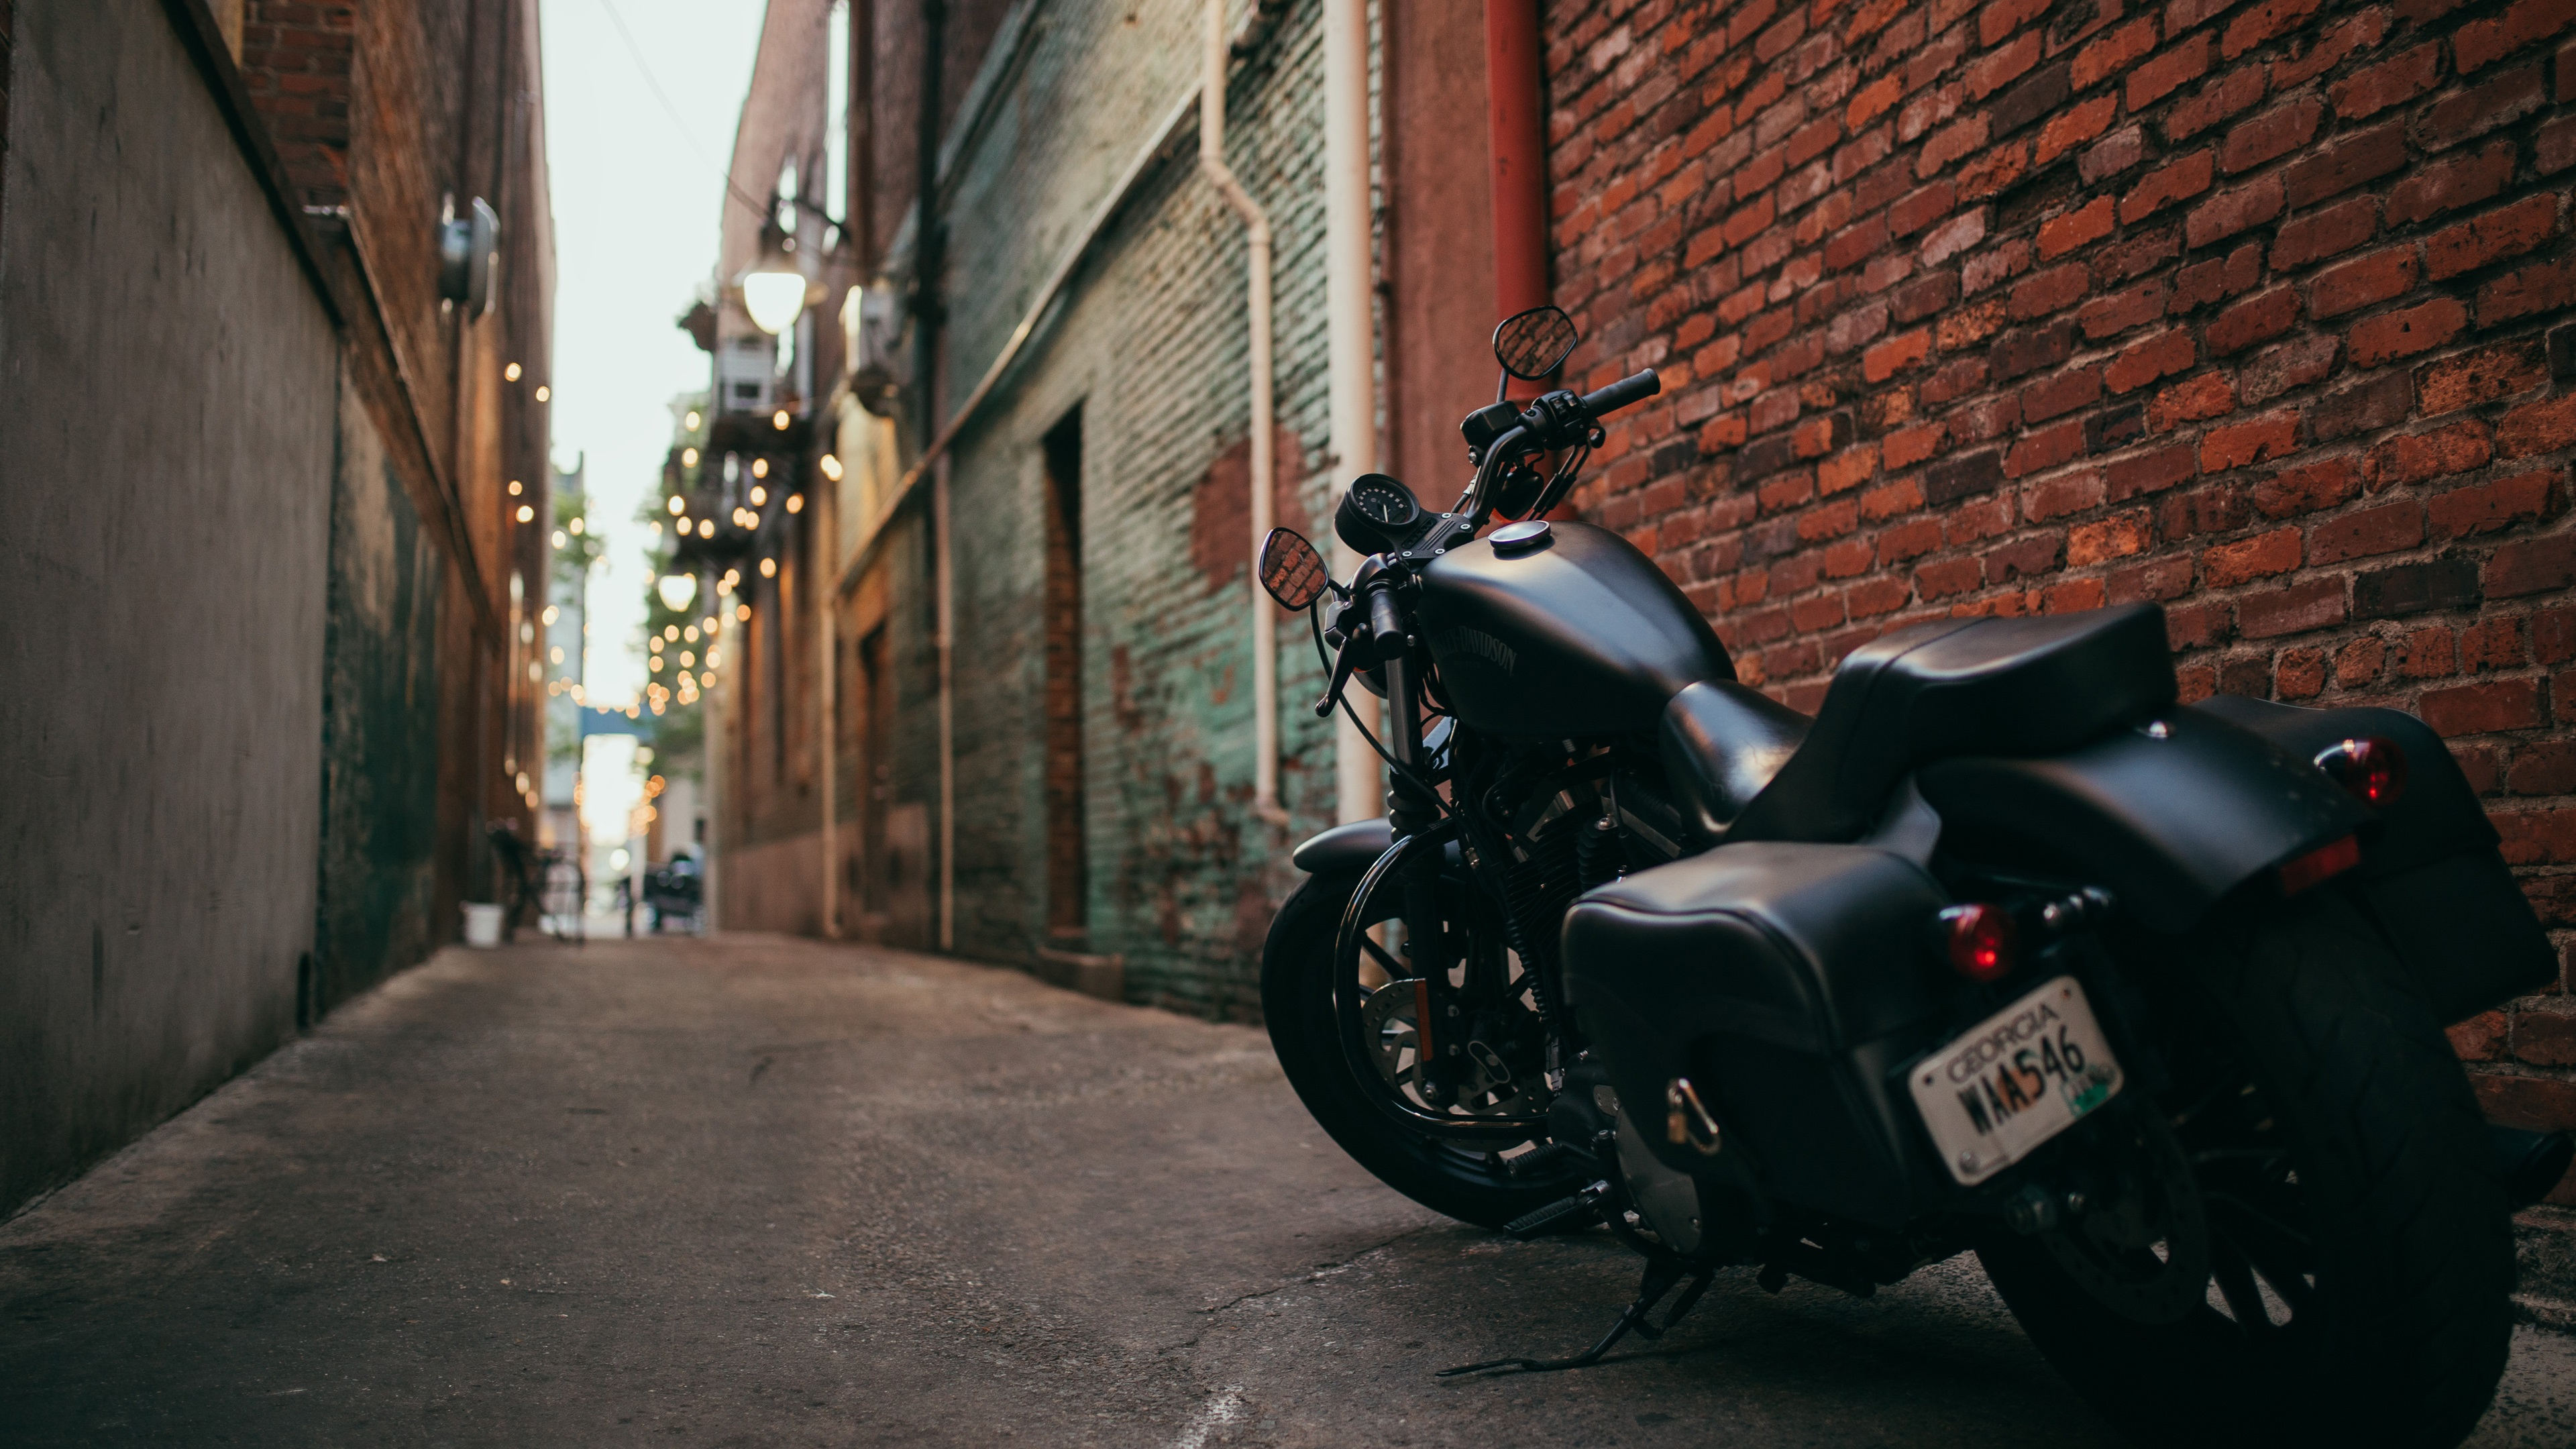 Wallpaper Harley Davidson Black Motorcycle Back View Path 3840x2160 Uhd 4k Picture Image